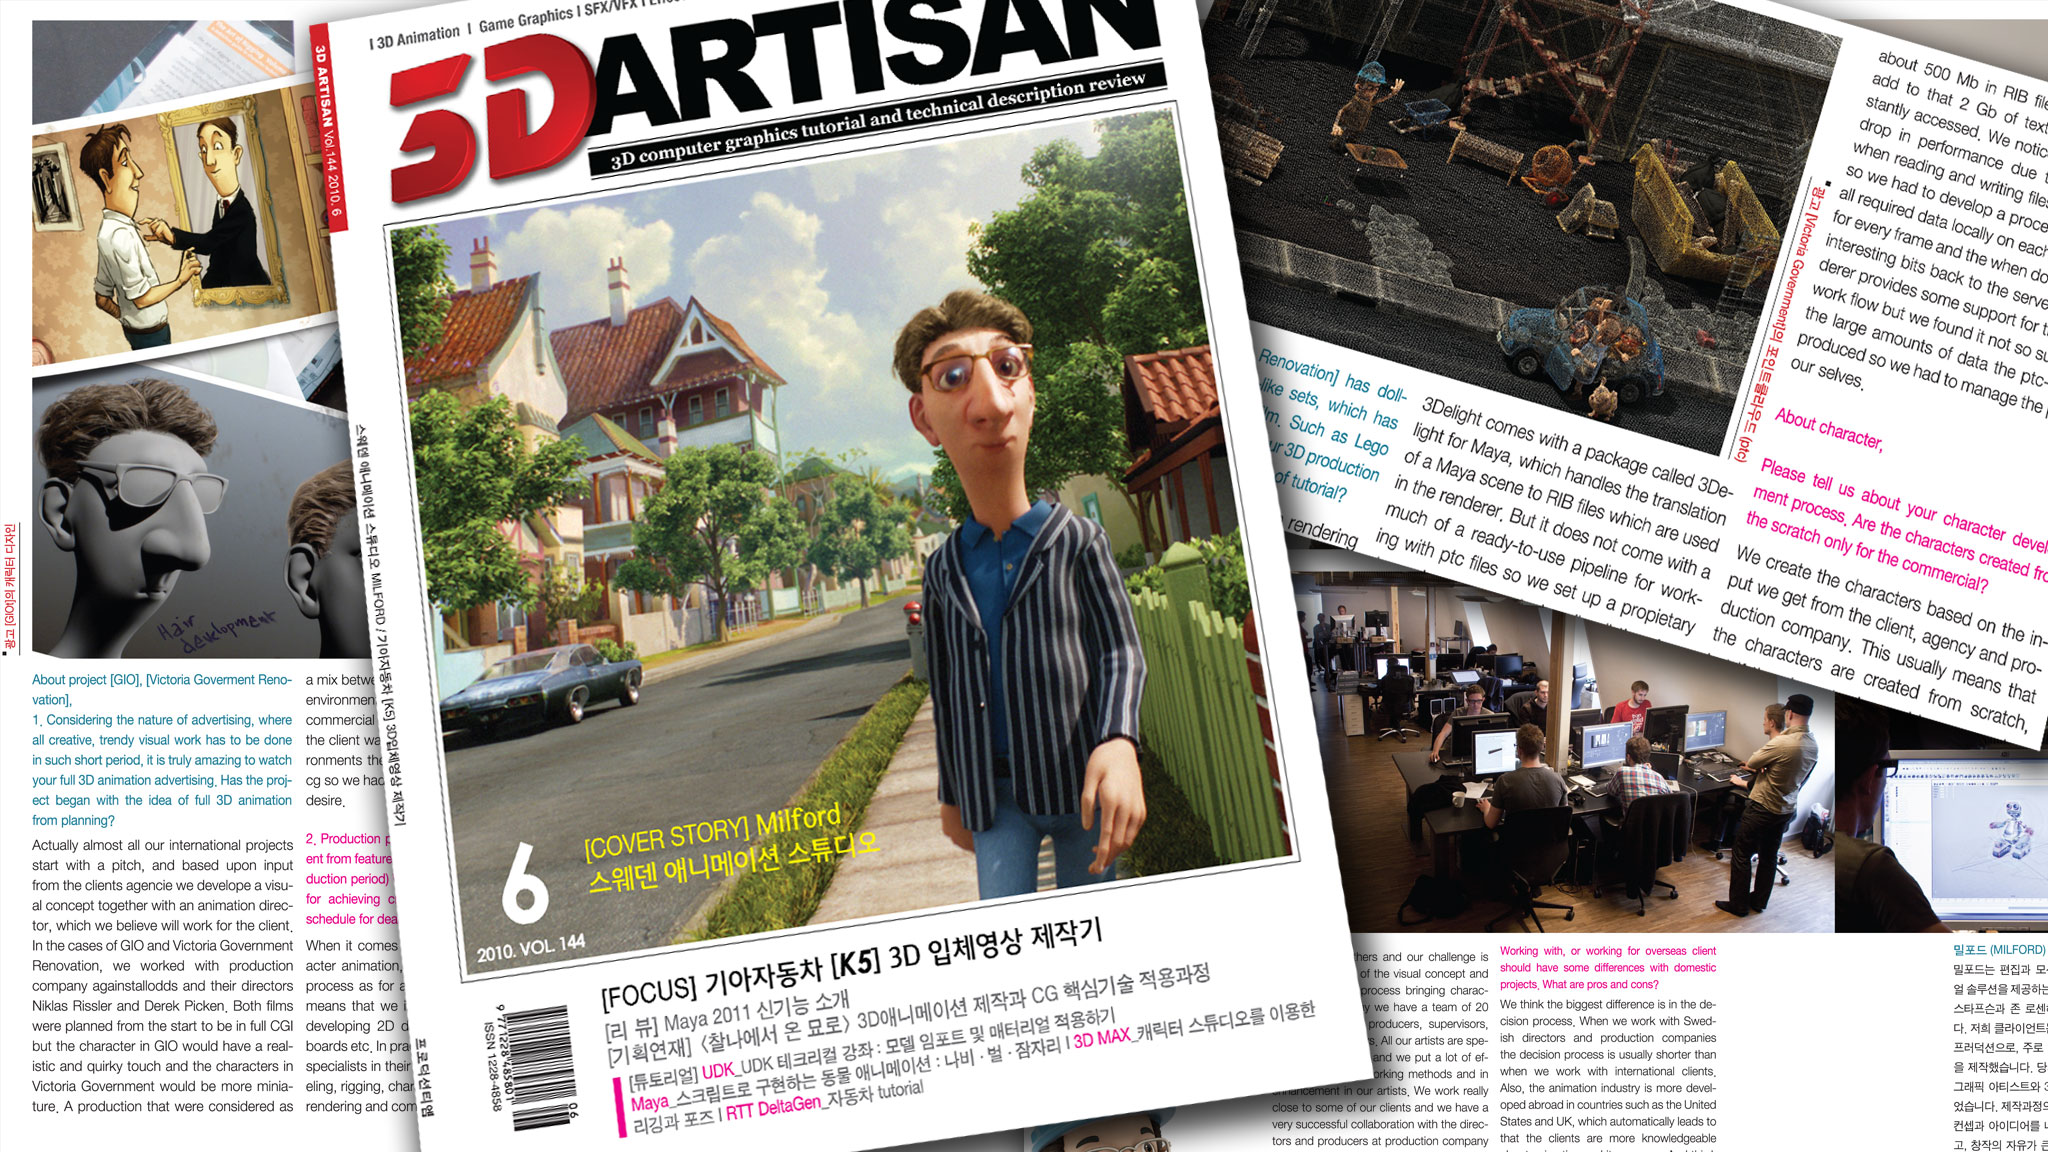 Article about Milford Film in Korean magazine 3D Artisan